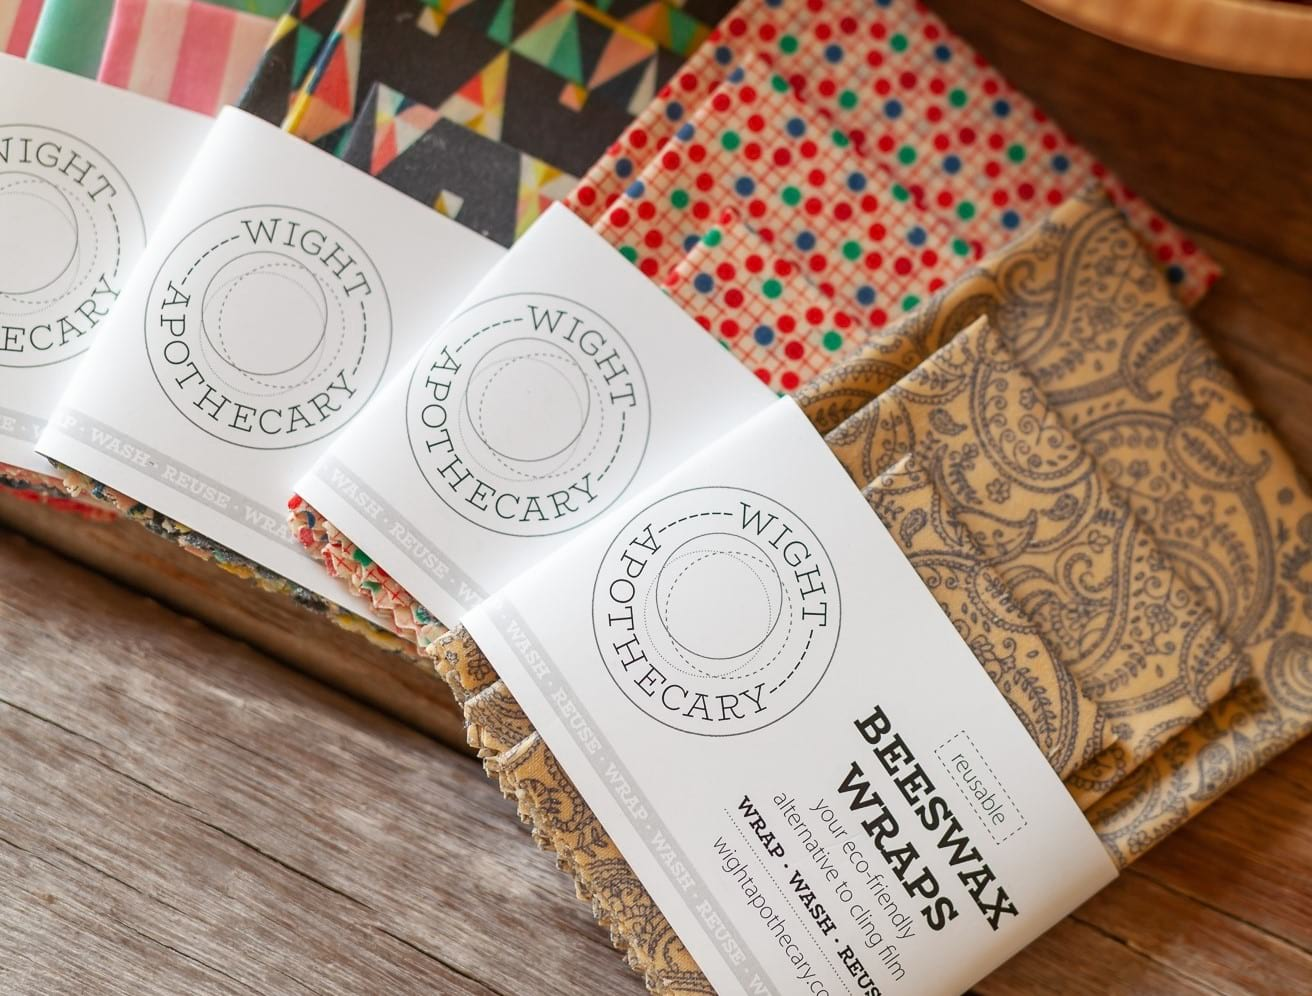 Wight Apothecary Beeswax wraps